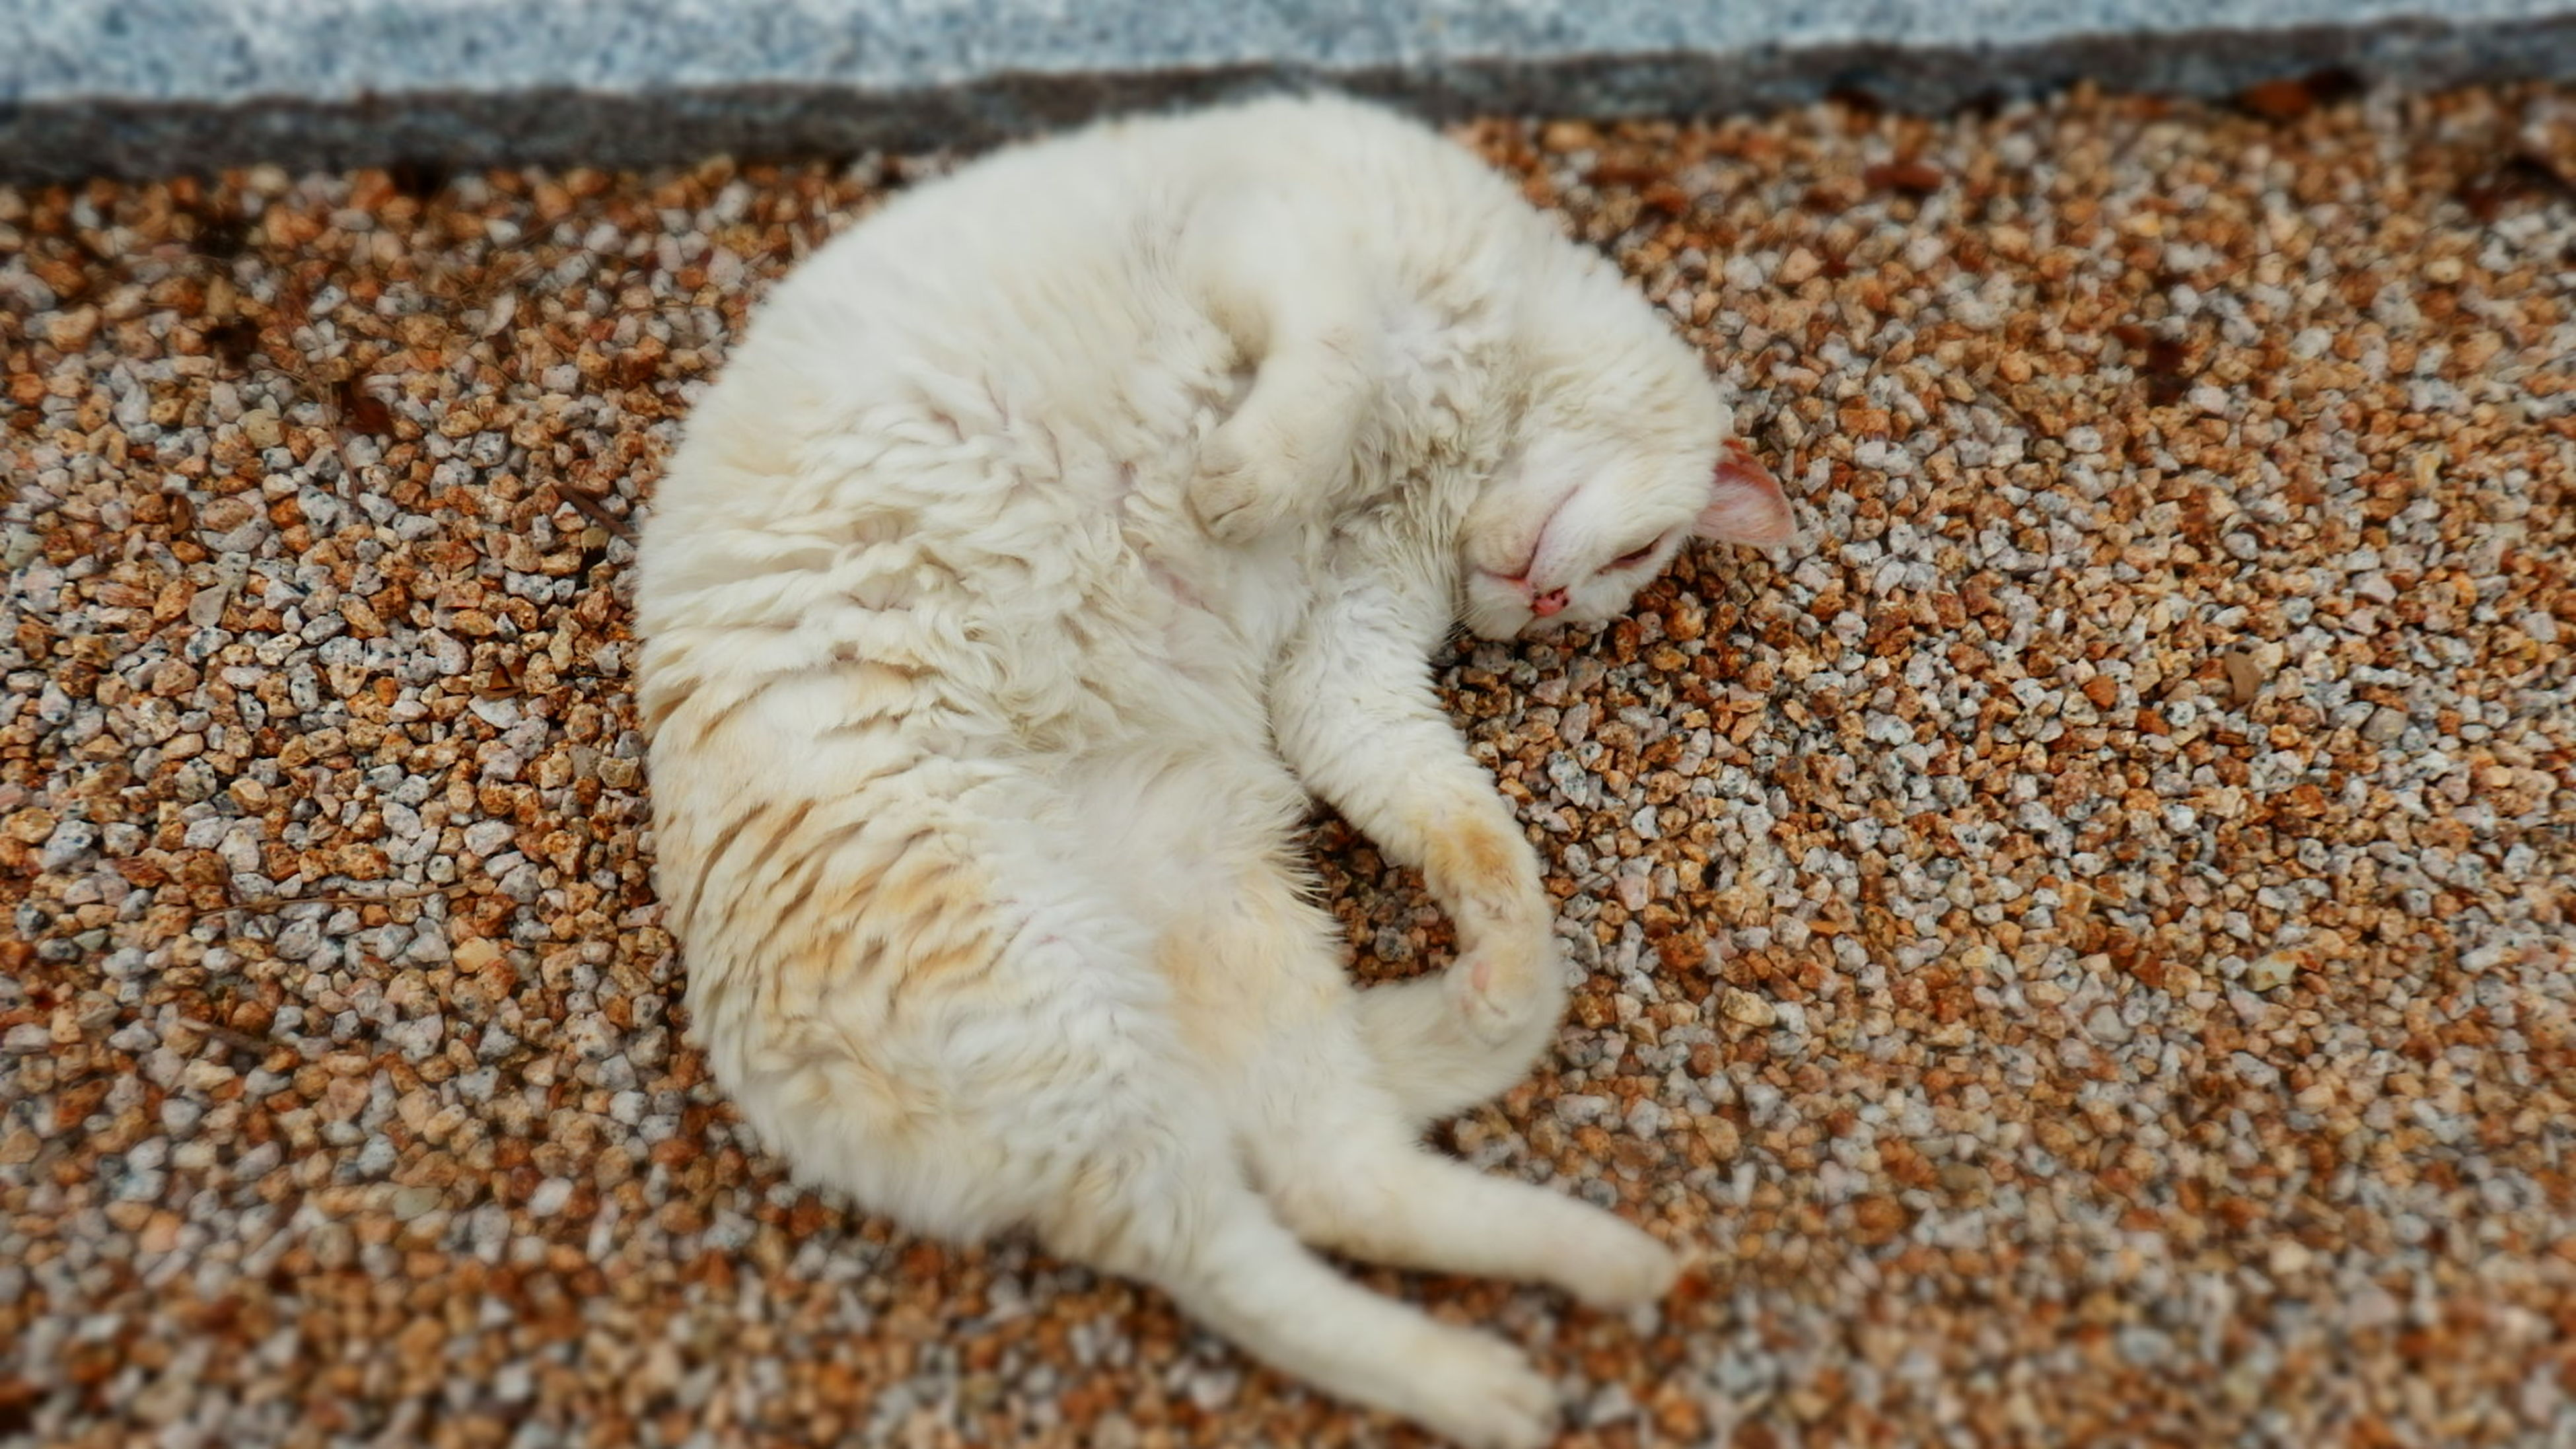 animal themes, one animal, pets, domestic animals, domestic cat, cat, mammal, feline, relaxation, whisker, high angle view, close-up, white color, resting, lying down, sleeping, zoology, no people, day, cute